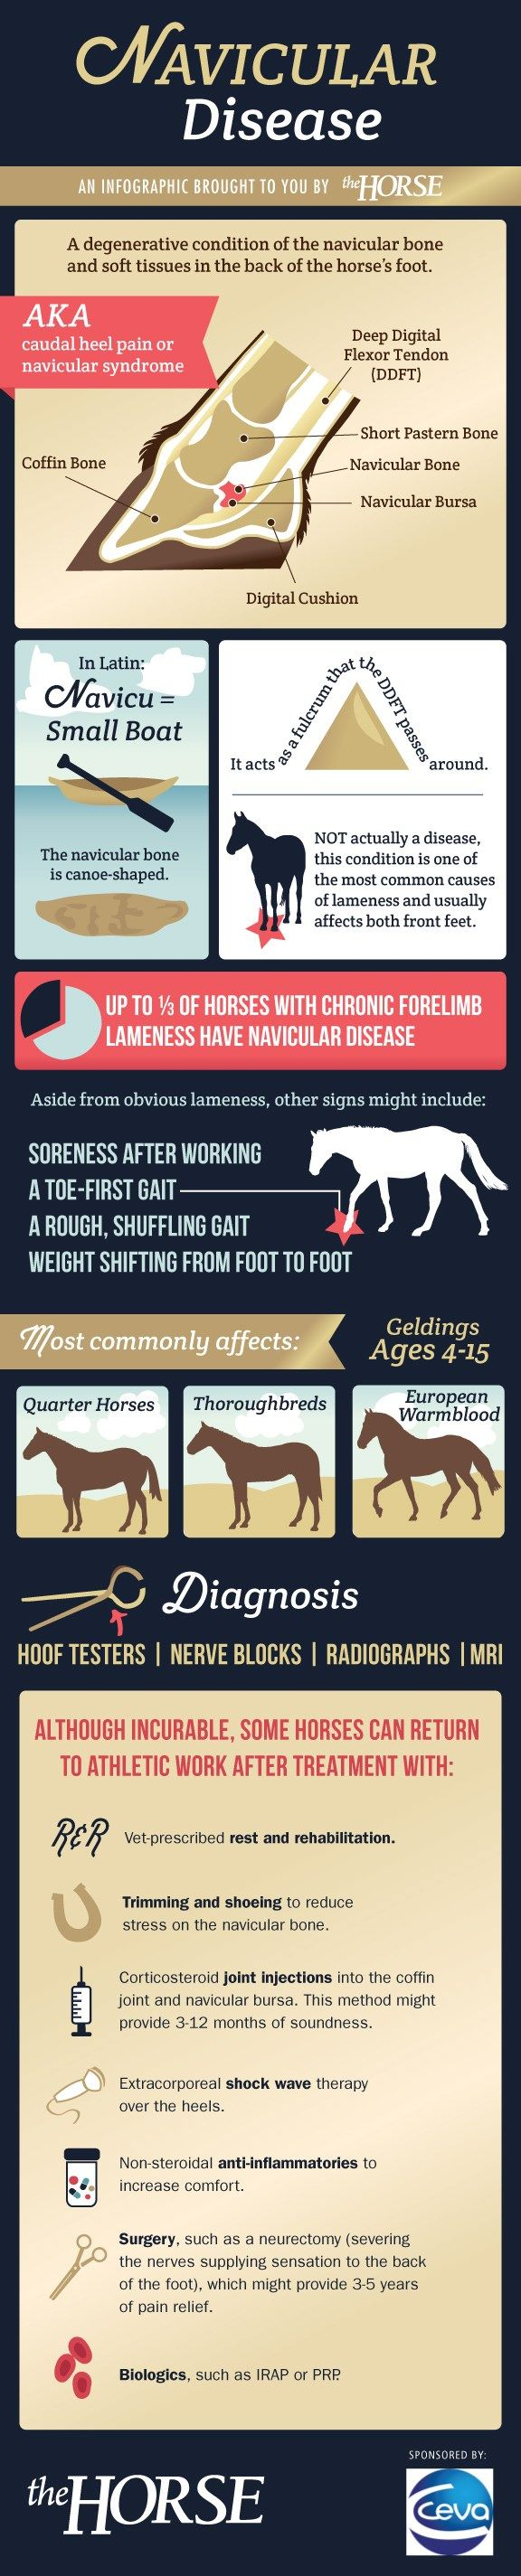 Infographic: Navicular Disease | TheHorse.com